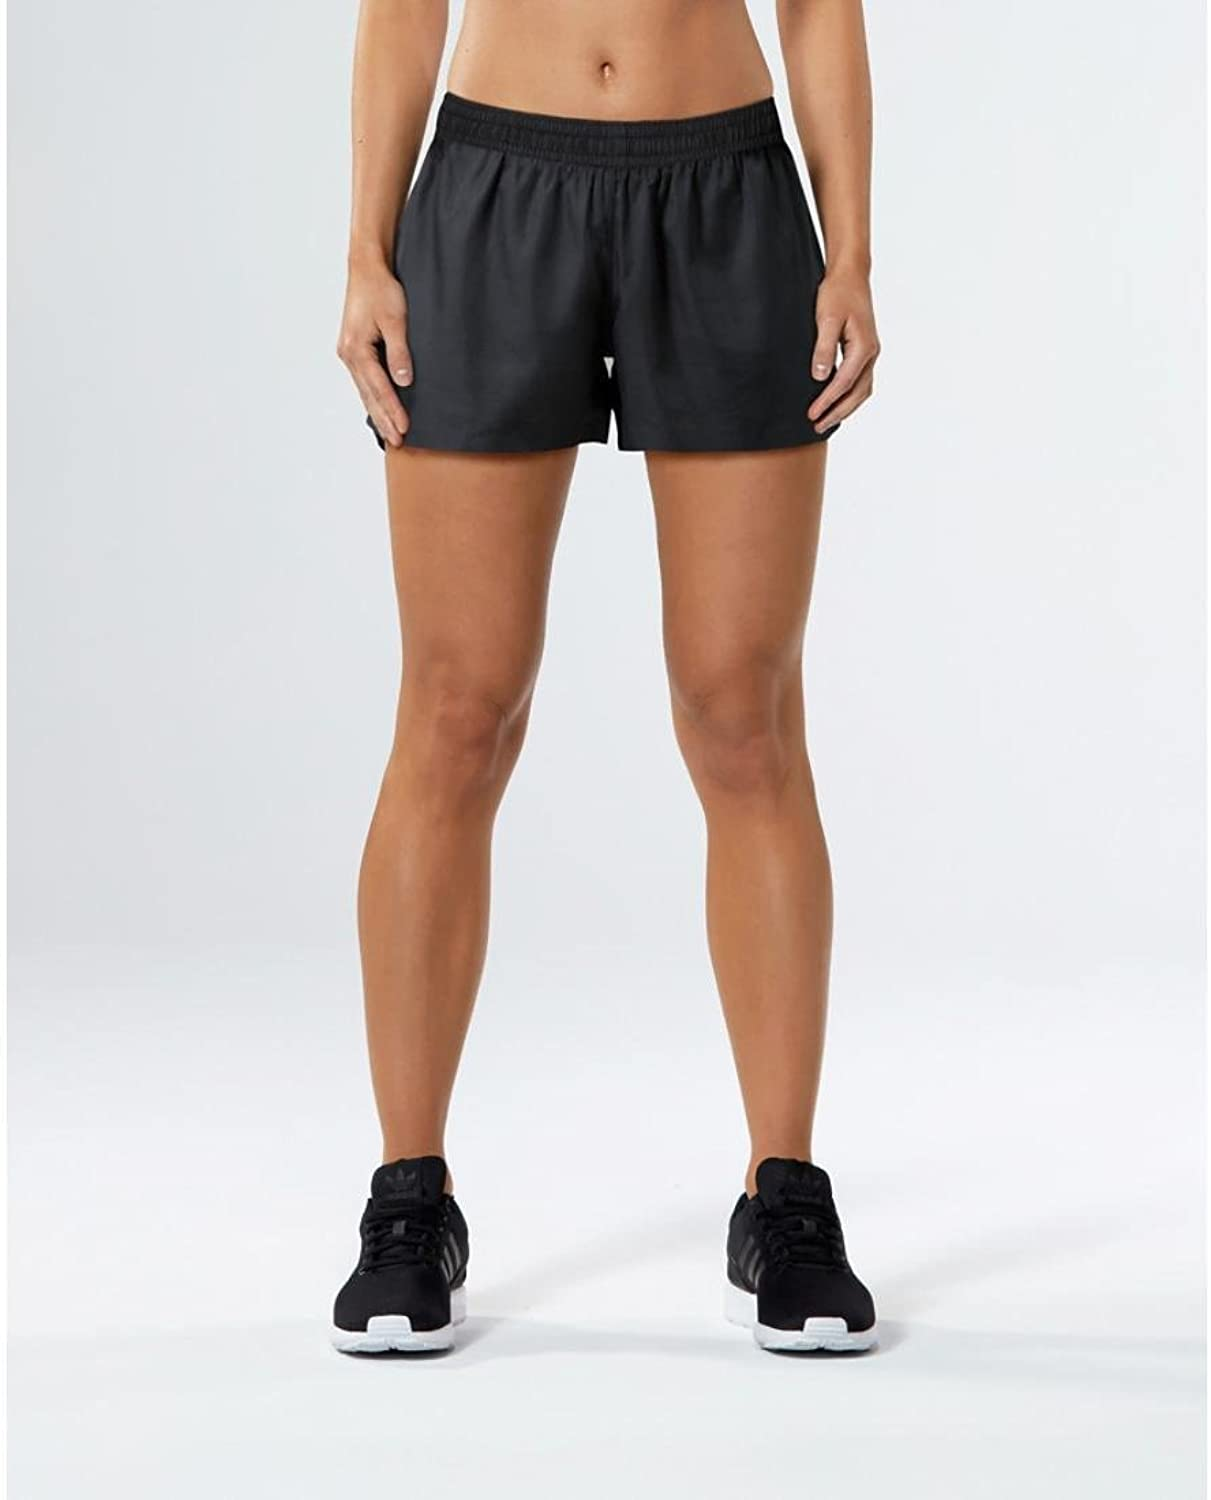 2XU Women's XLite Short 3  with Brief